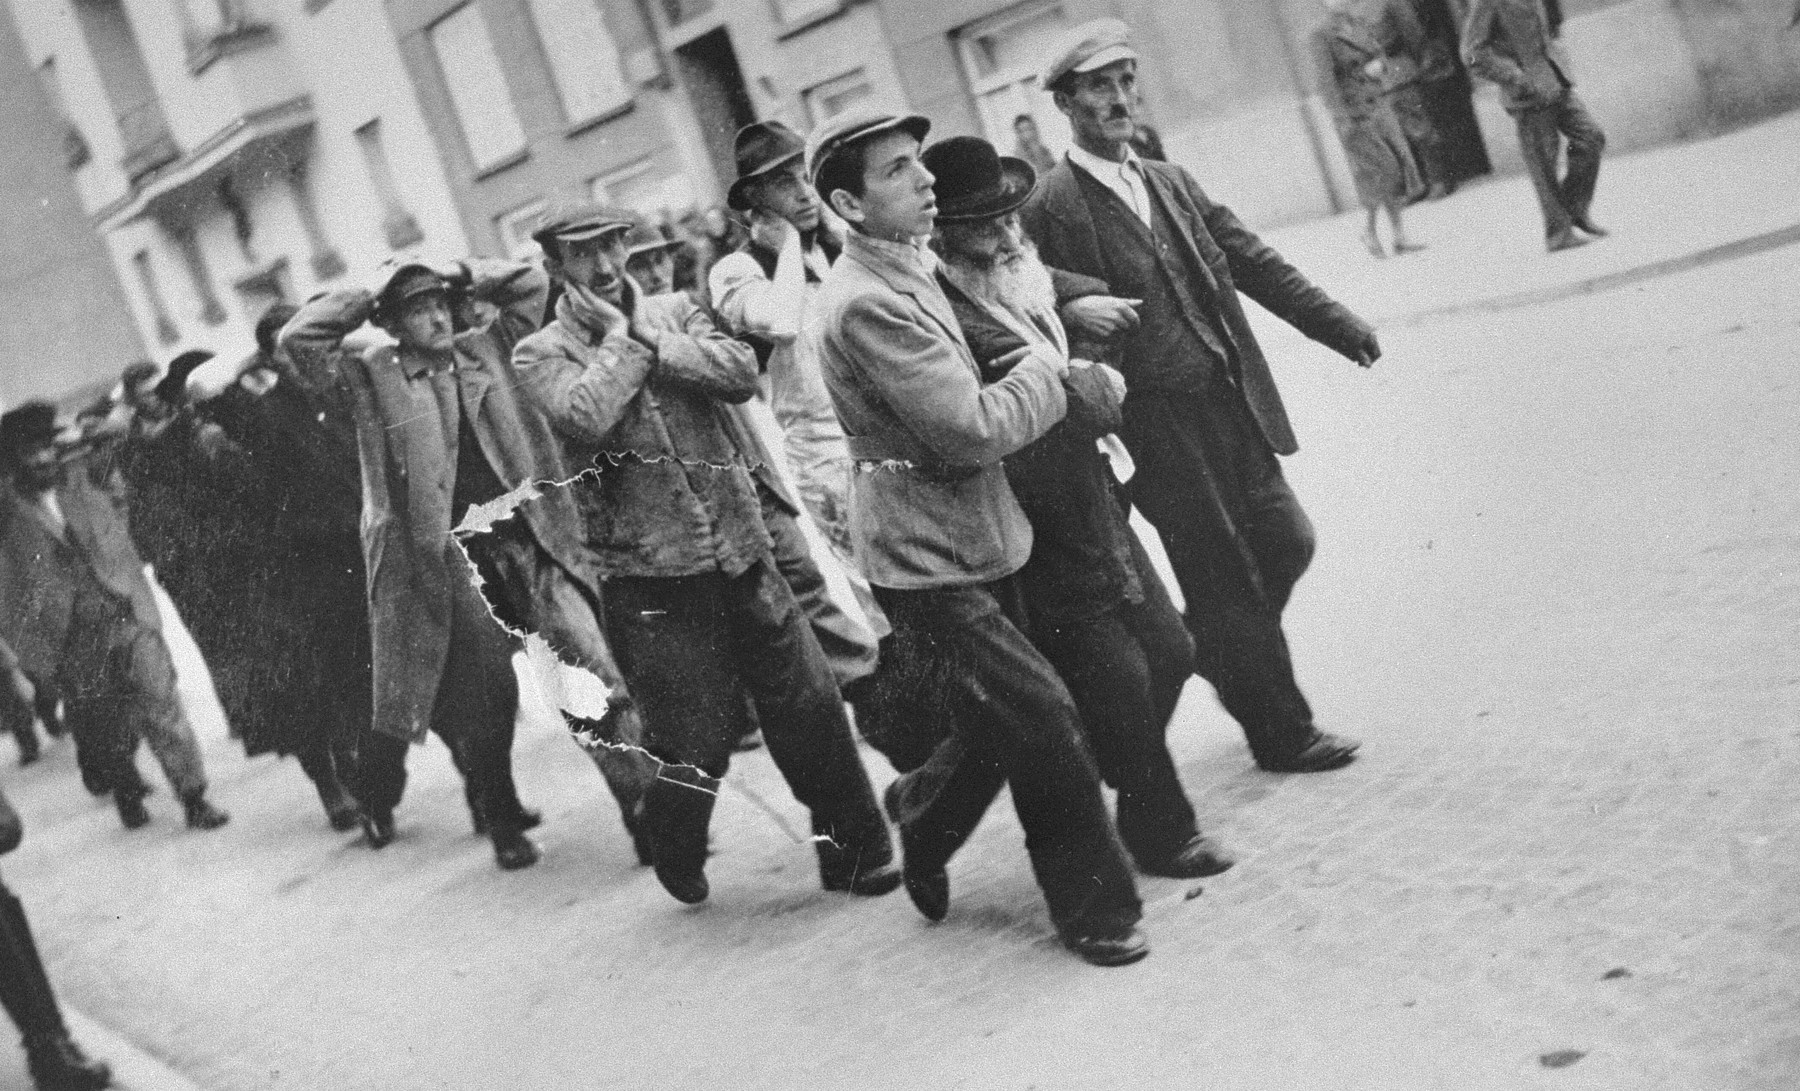 A group of Jewish men are rounded-up and marched down a street in Krakow in the early months of the war.